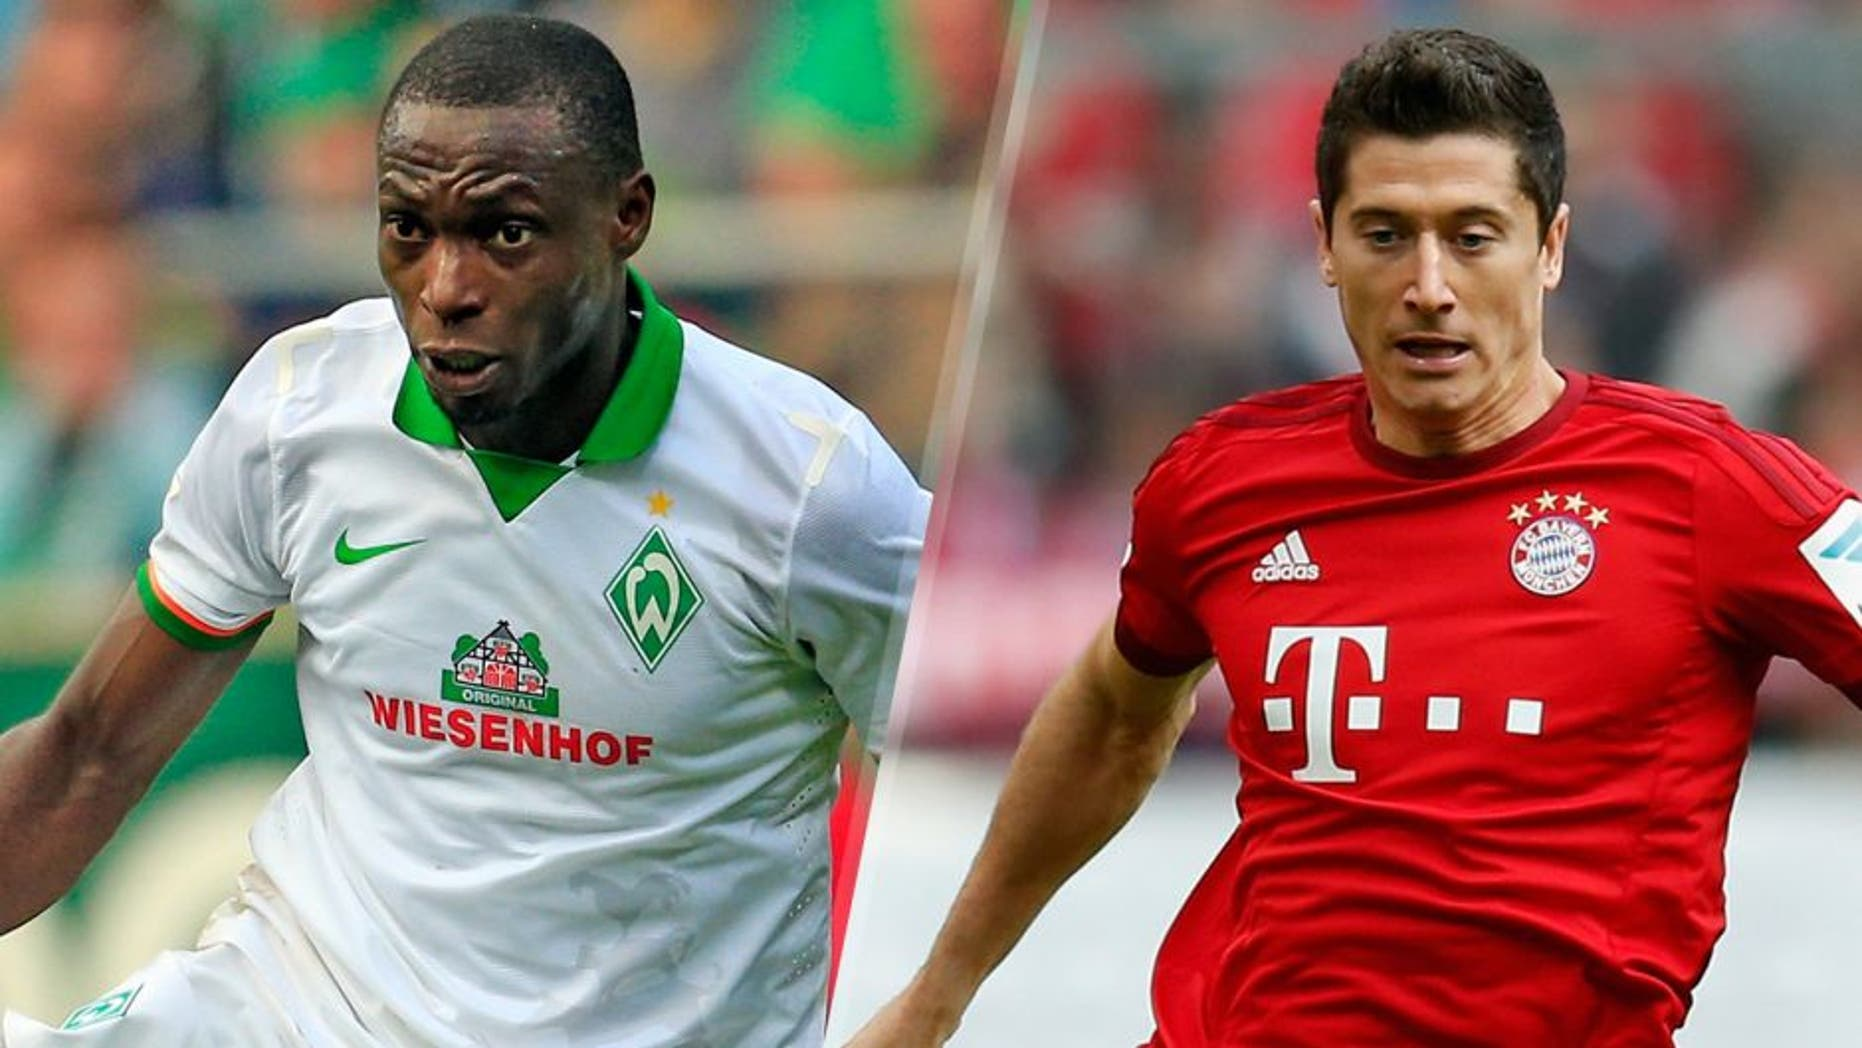 BREMEN, GERMANY - SEPTEMBER 19: Anthony Ujah of Bremen plays the ball during the Bundesliga match between Werder Bremen and FC Ingolstadt at Weserstadion on September 19, 2015 in Bremen, Germany. (Photo by Martin Stoever/Bongarts/Getty Images) MUNICH, GERMANY - OCTOBER 04: Robert Lewandowski of Bayern Muenchen runs with the ball during the Bundesliga match between FC Bayern Muenchen and Borussia Dortmund at Allianz Arena on October 4, 2015 in Munich, Germany. (Photo by Boris Streubel/Getty Images)